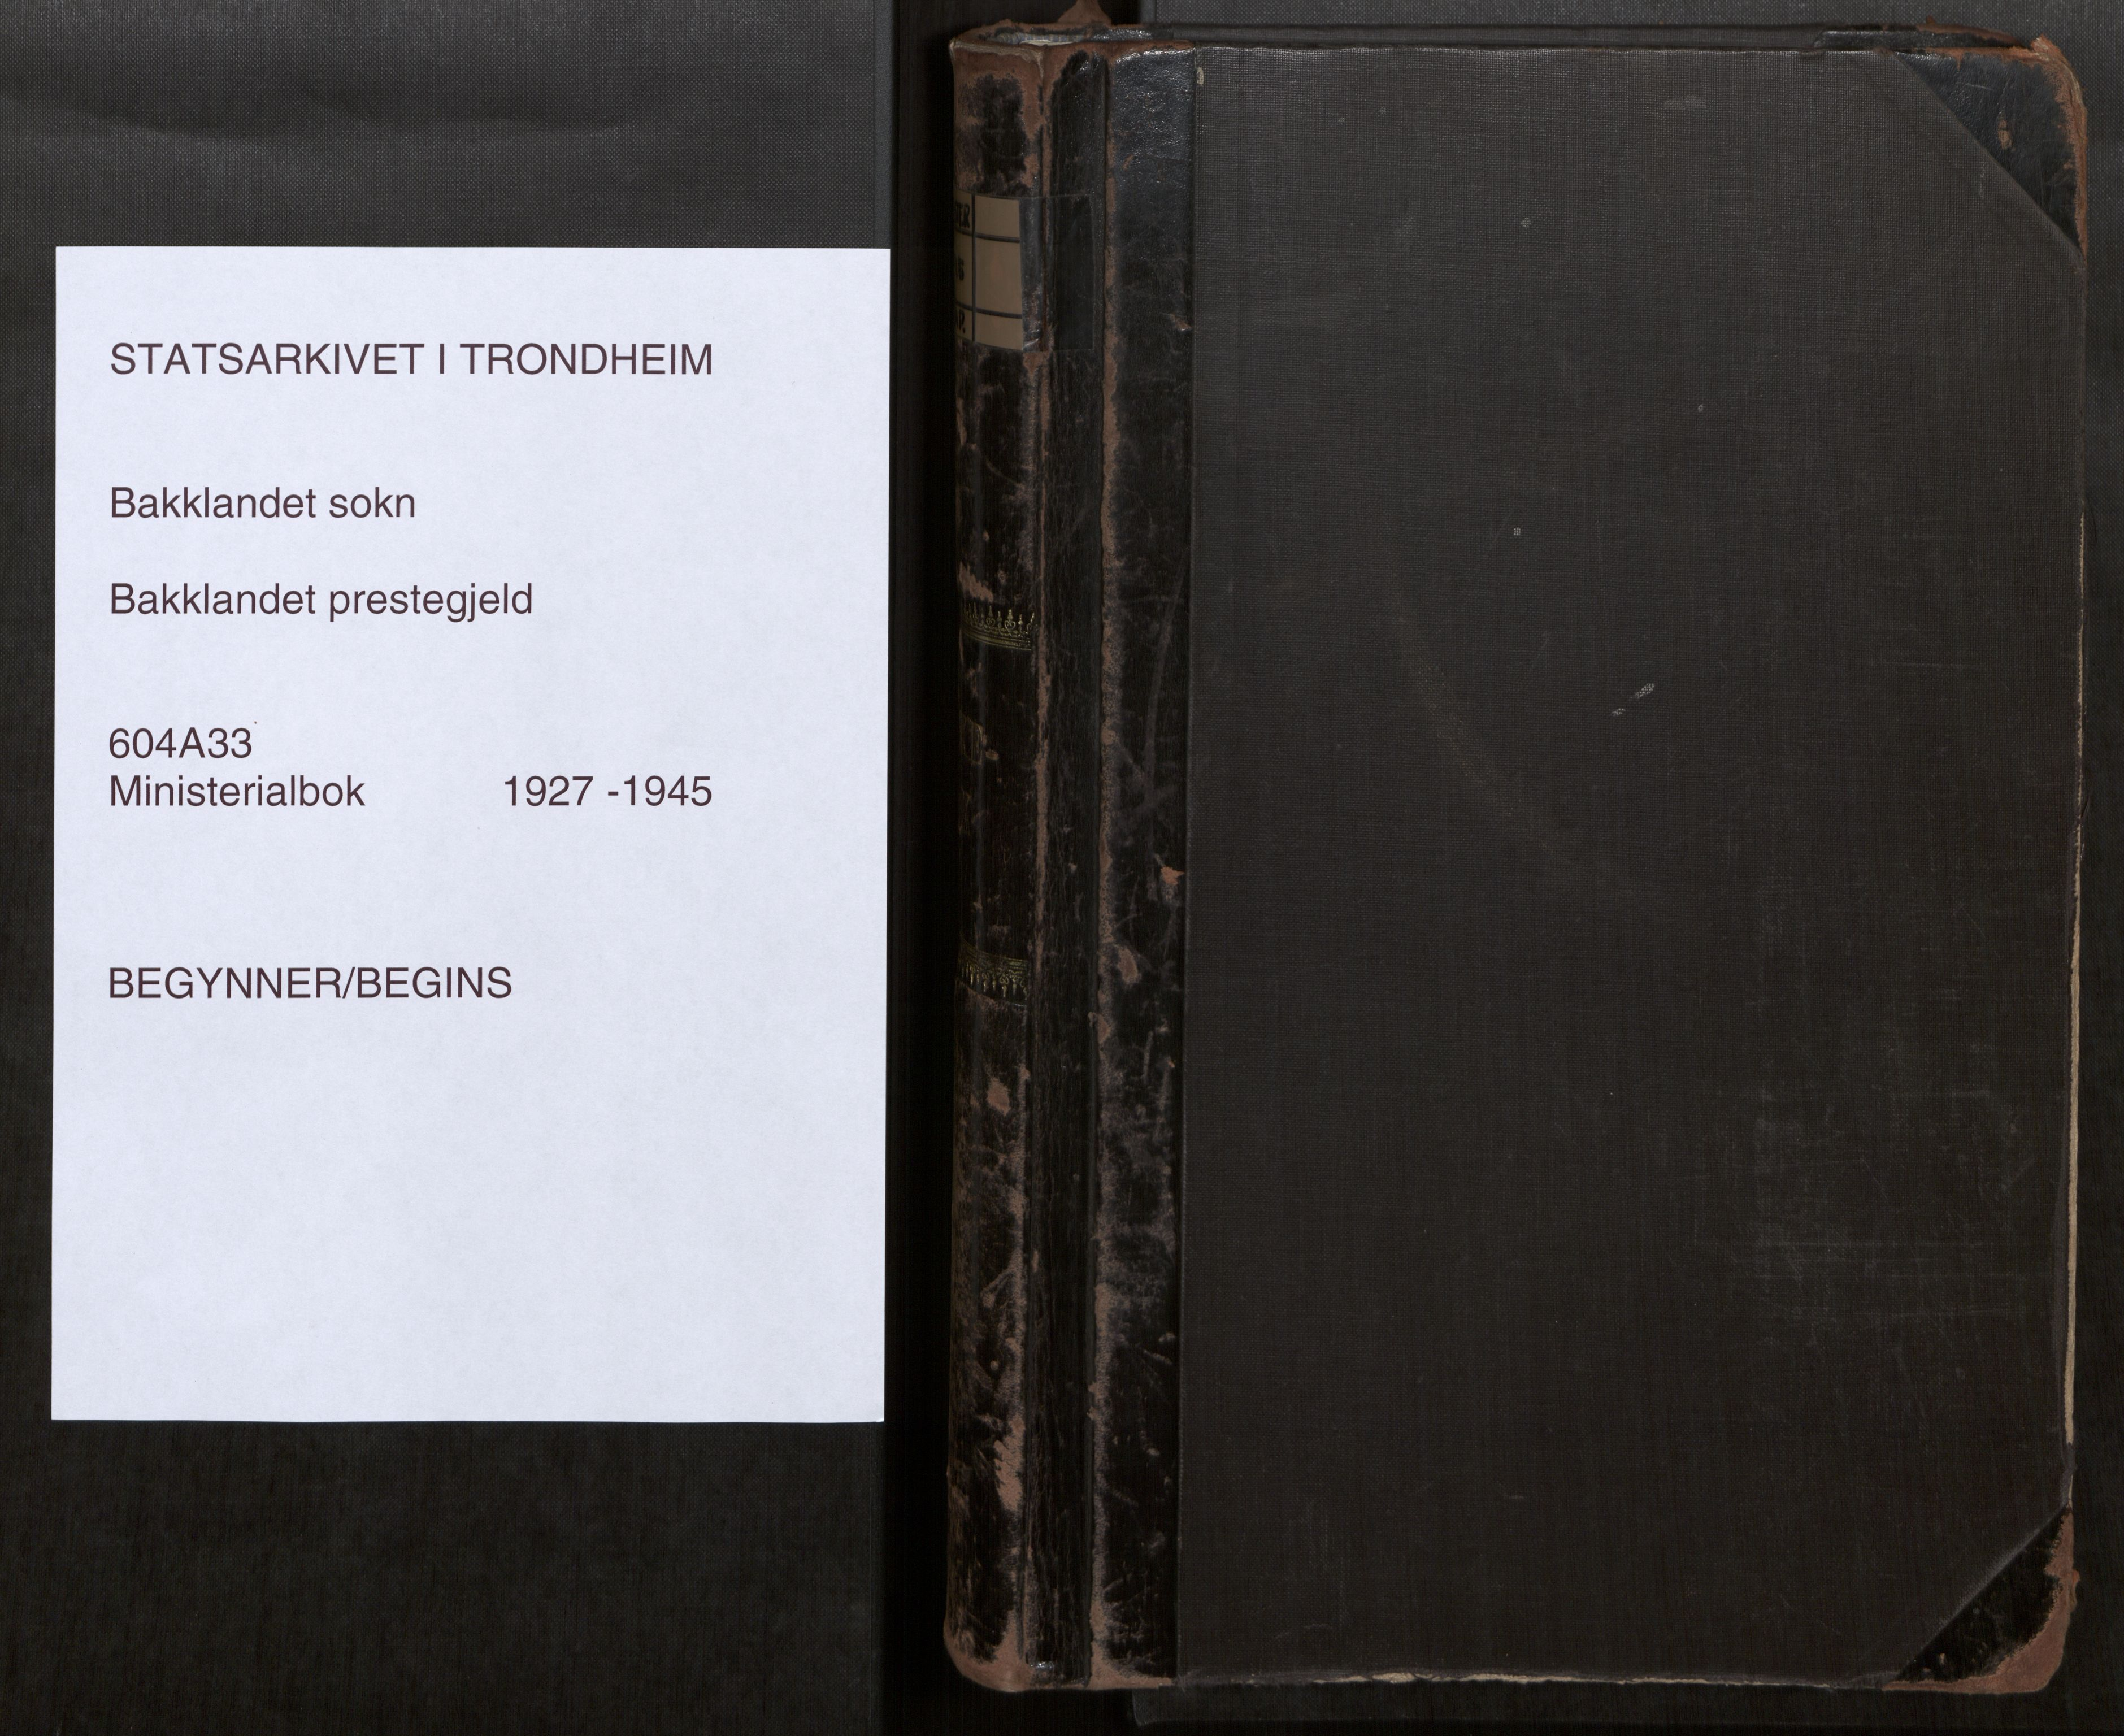 SAT, Bakklandet sokneprestkontor, Parish register (official) no. 604A33, 1927-1945